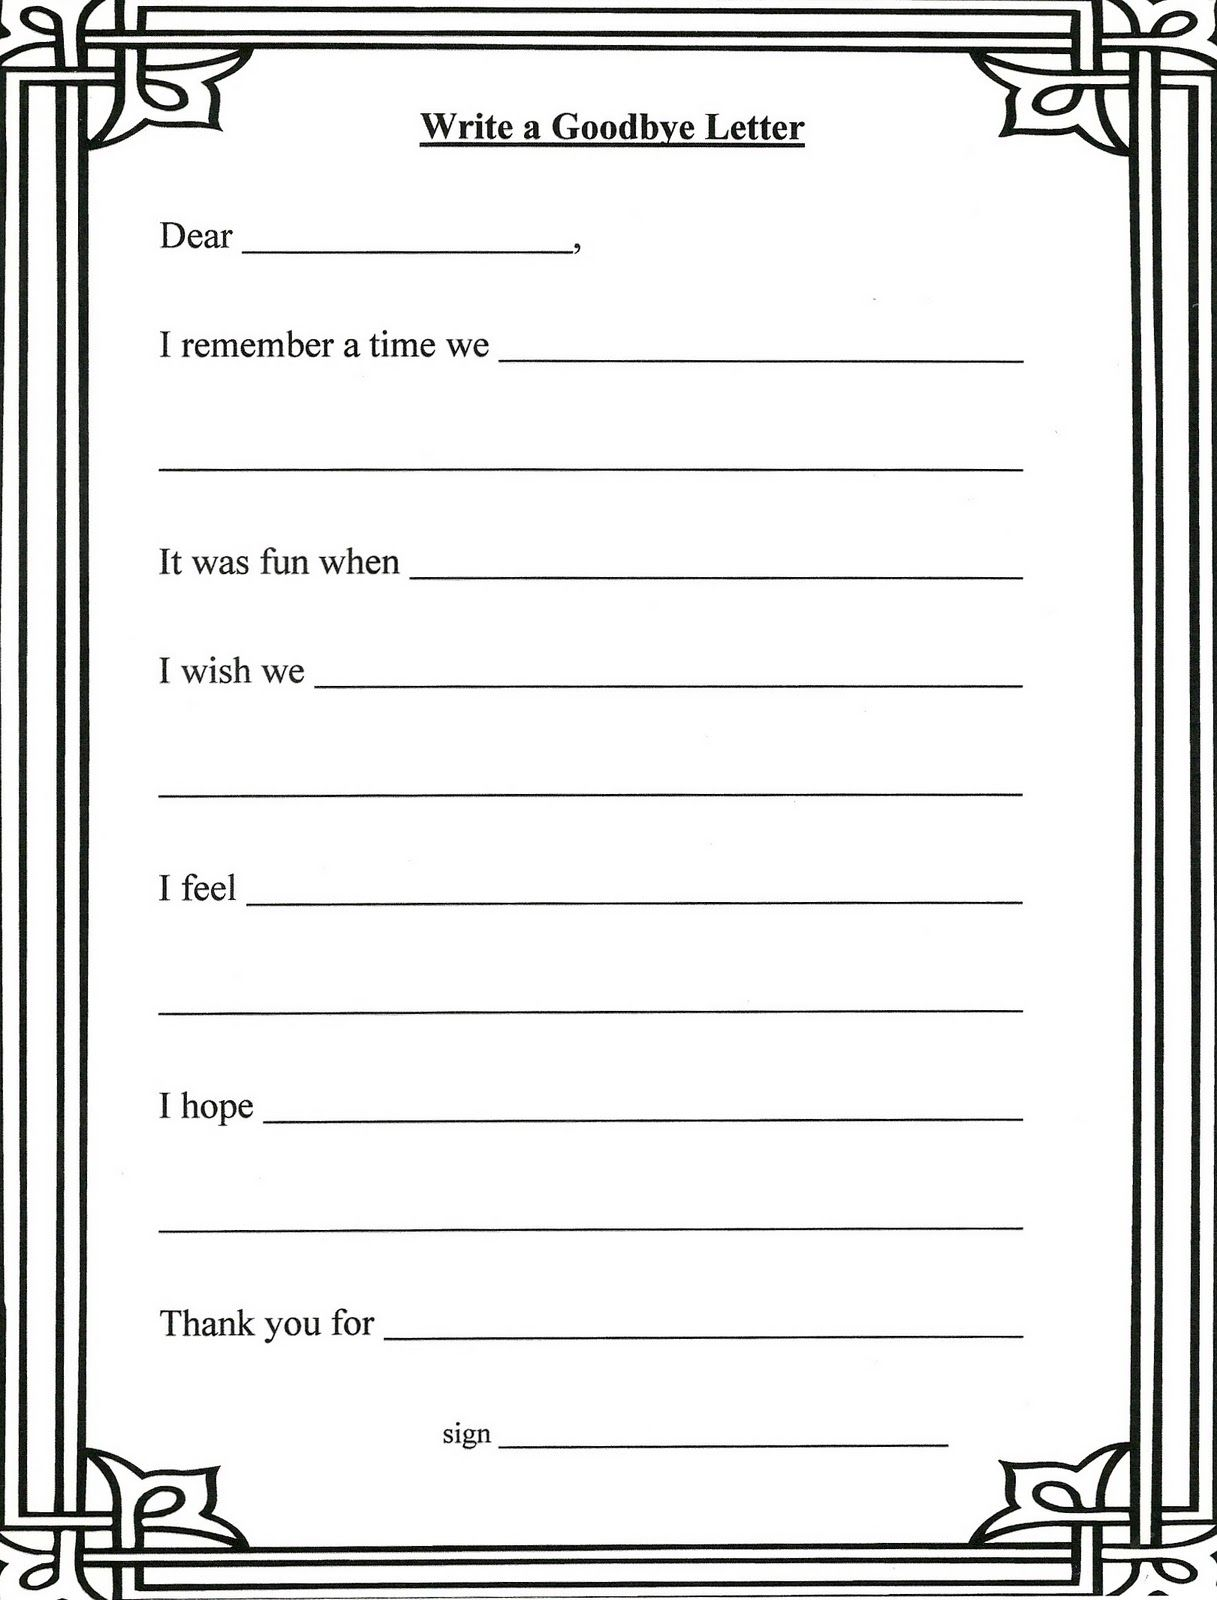 Worksheets Grief Worksheets lorinda character education grief stages and goodbye letter letter